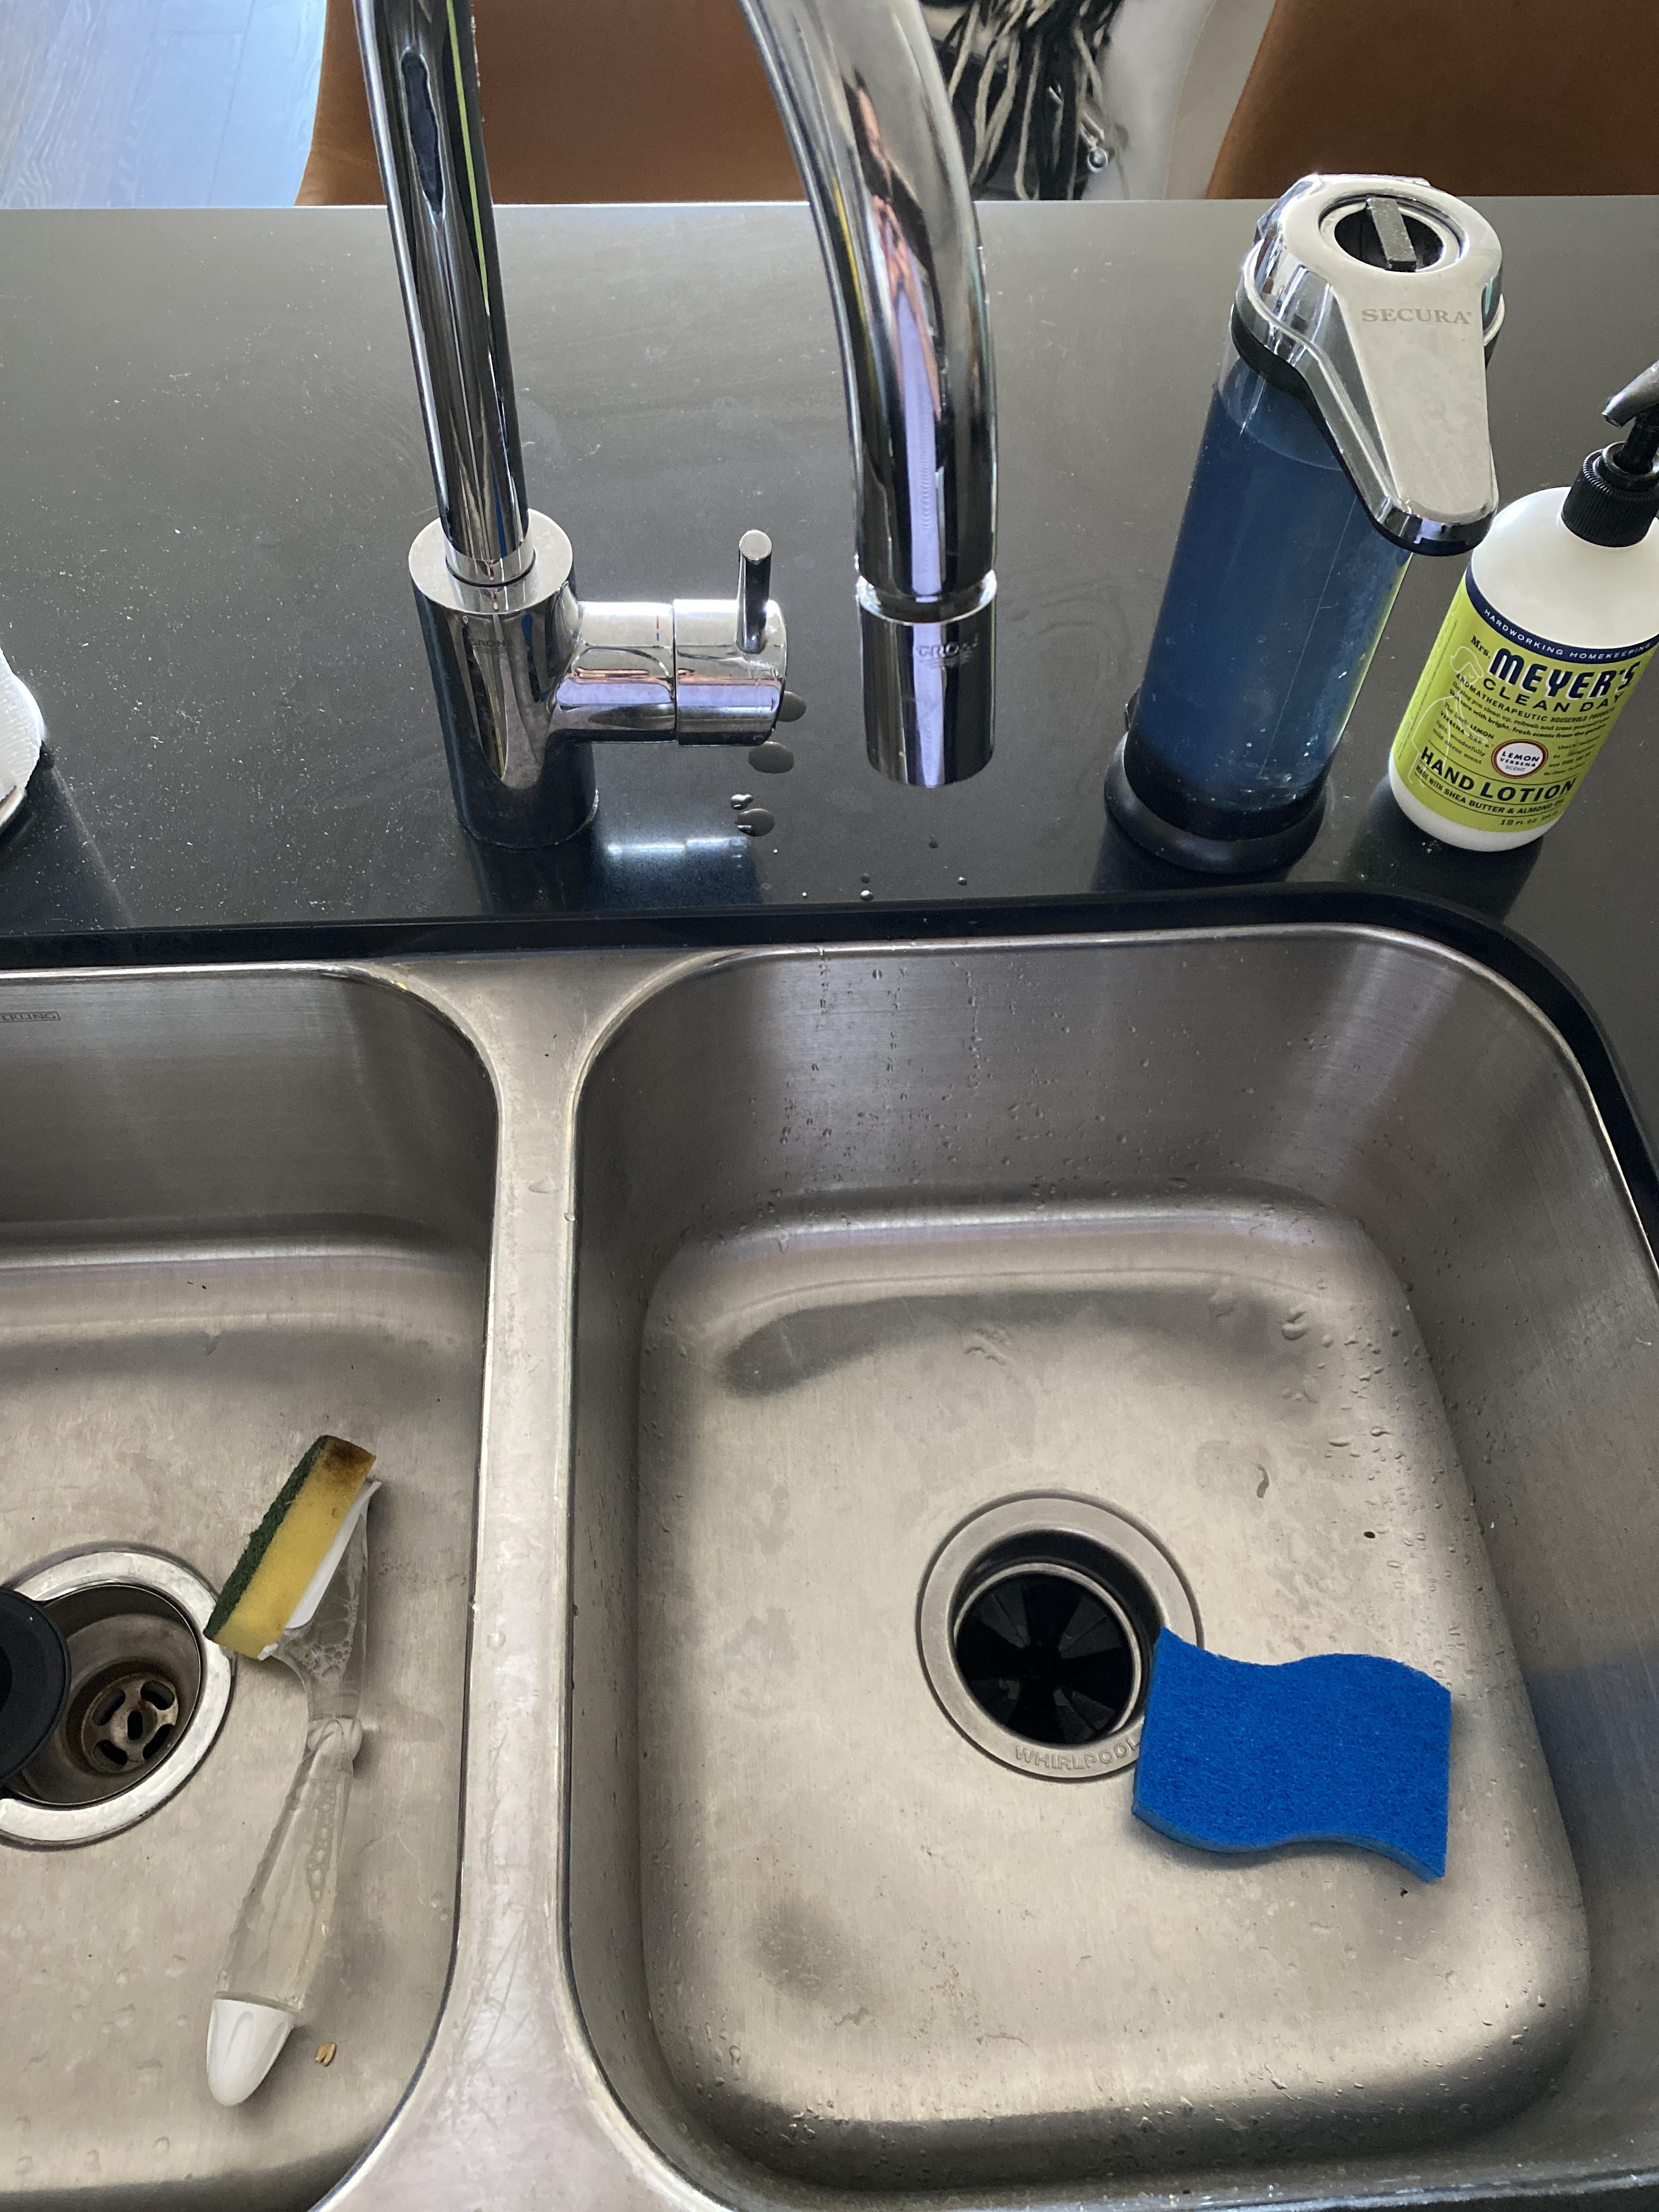 the faucet always gets wet either